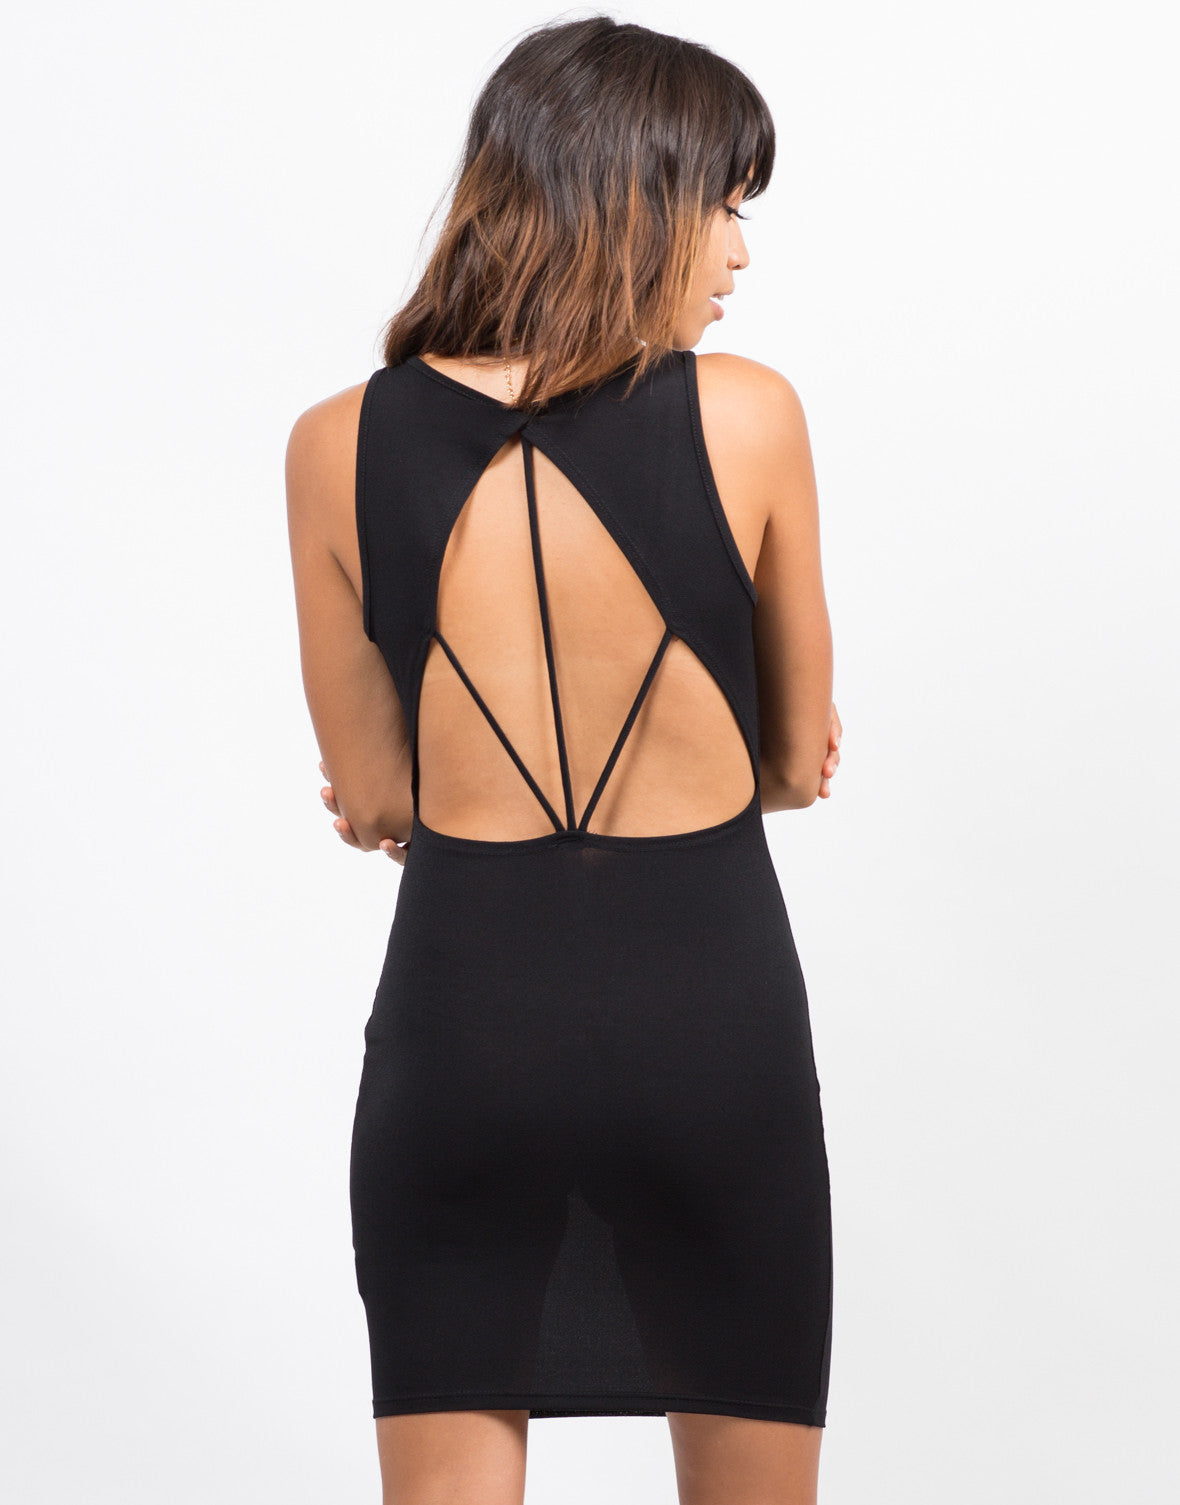 Back View of Strappy Back Bodycon Dress